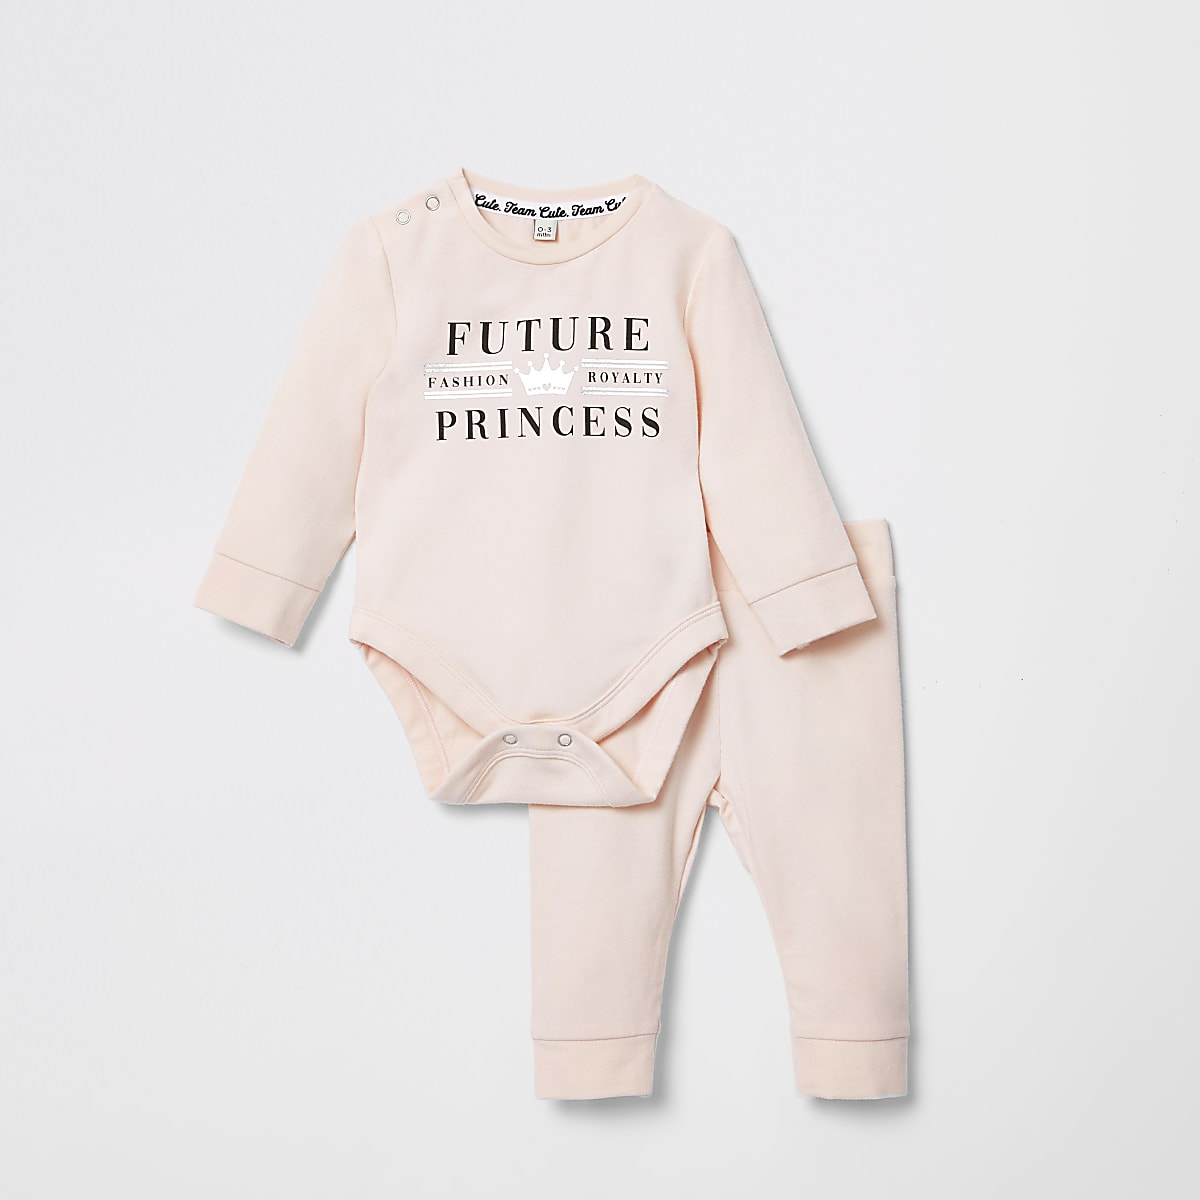 Baby pink 'Future princess' baby grow outfit